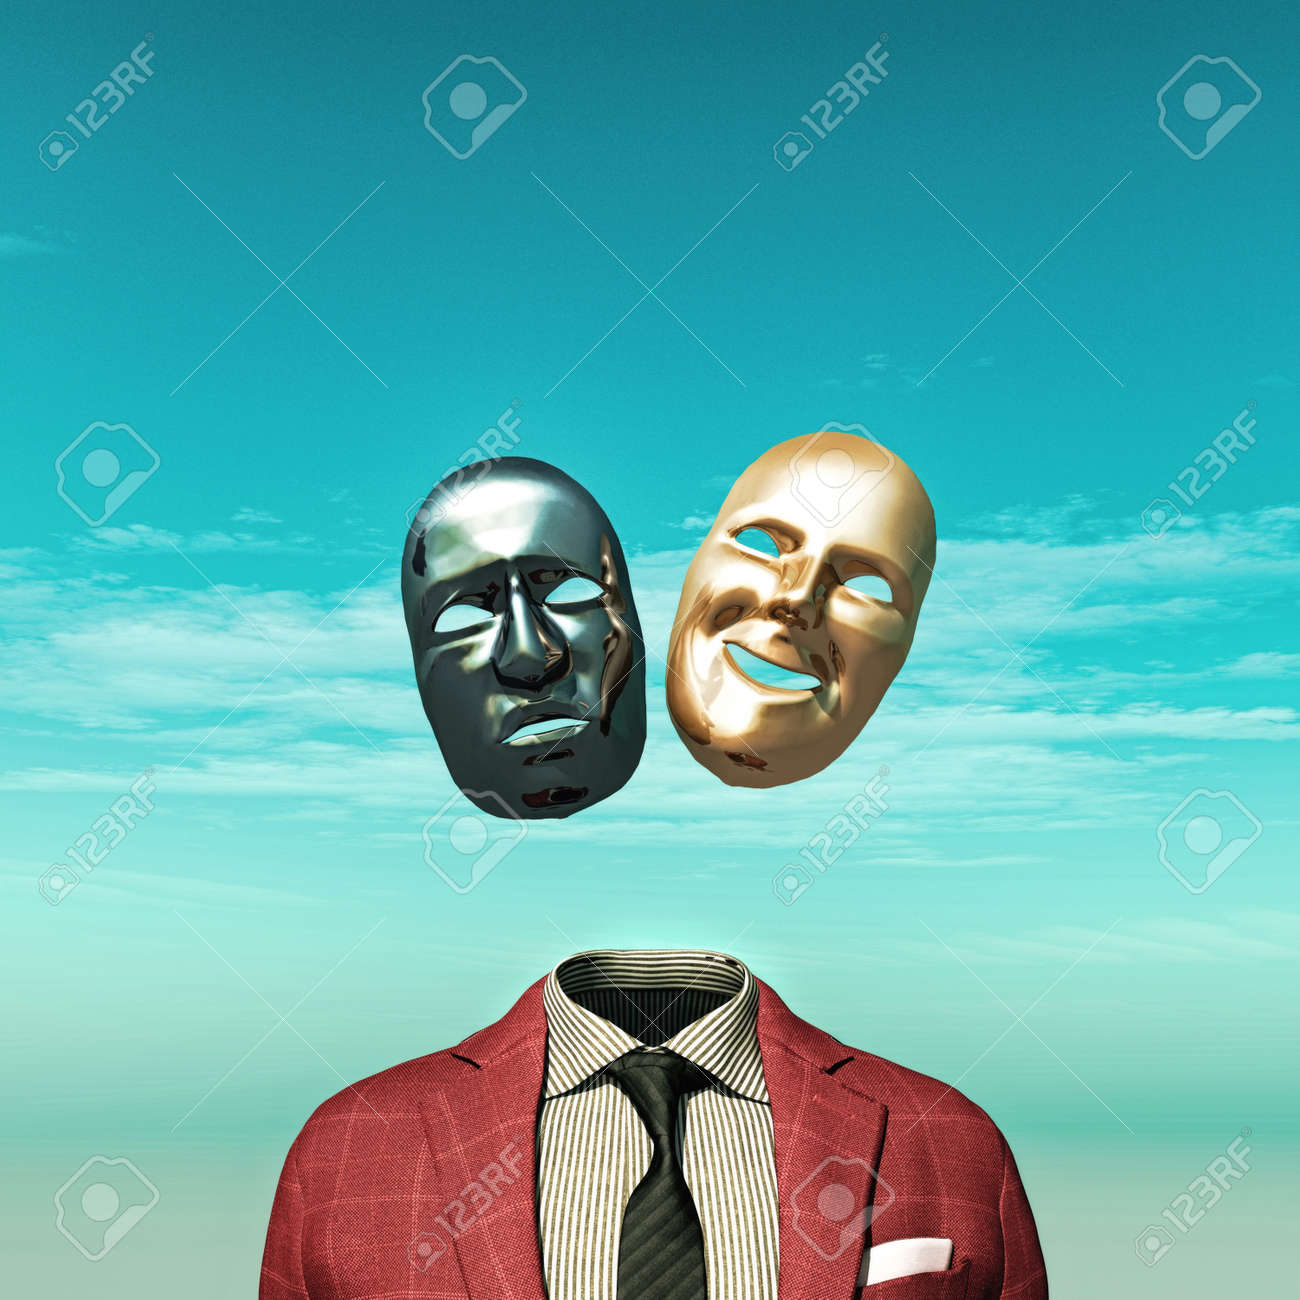 Headless person with two face mask above suit. - 134338632